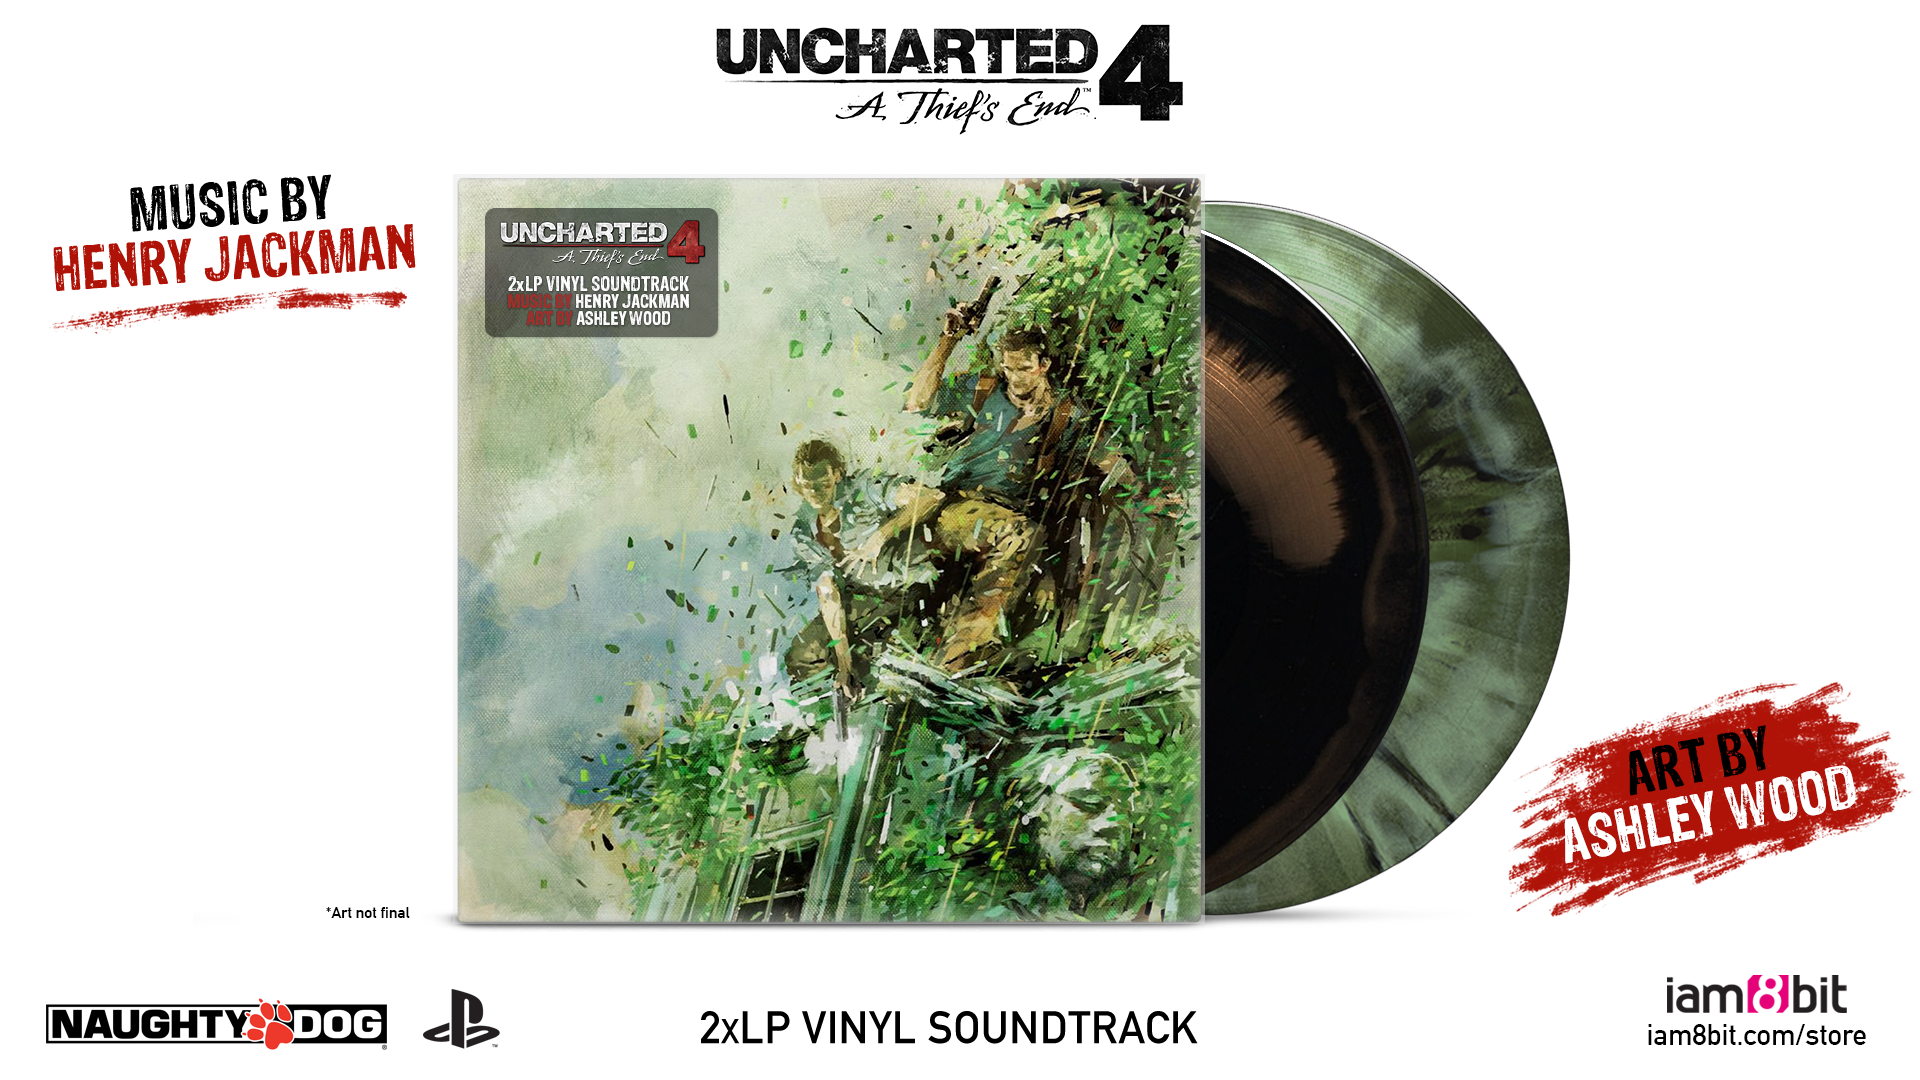 Uncharted 4: A Thief's End - Color Mockup